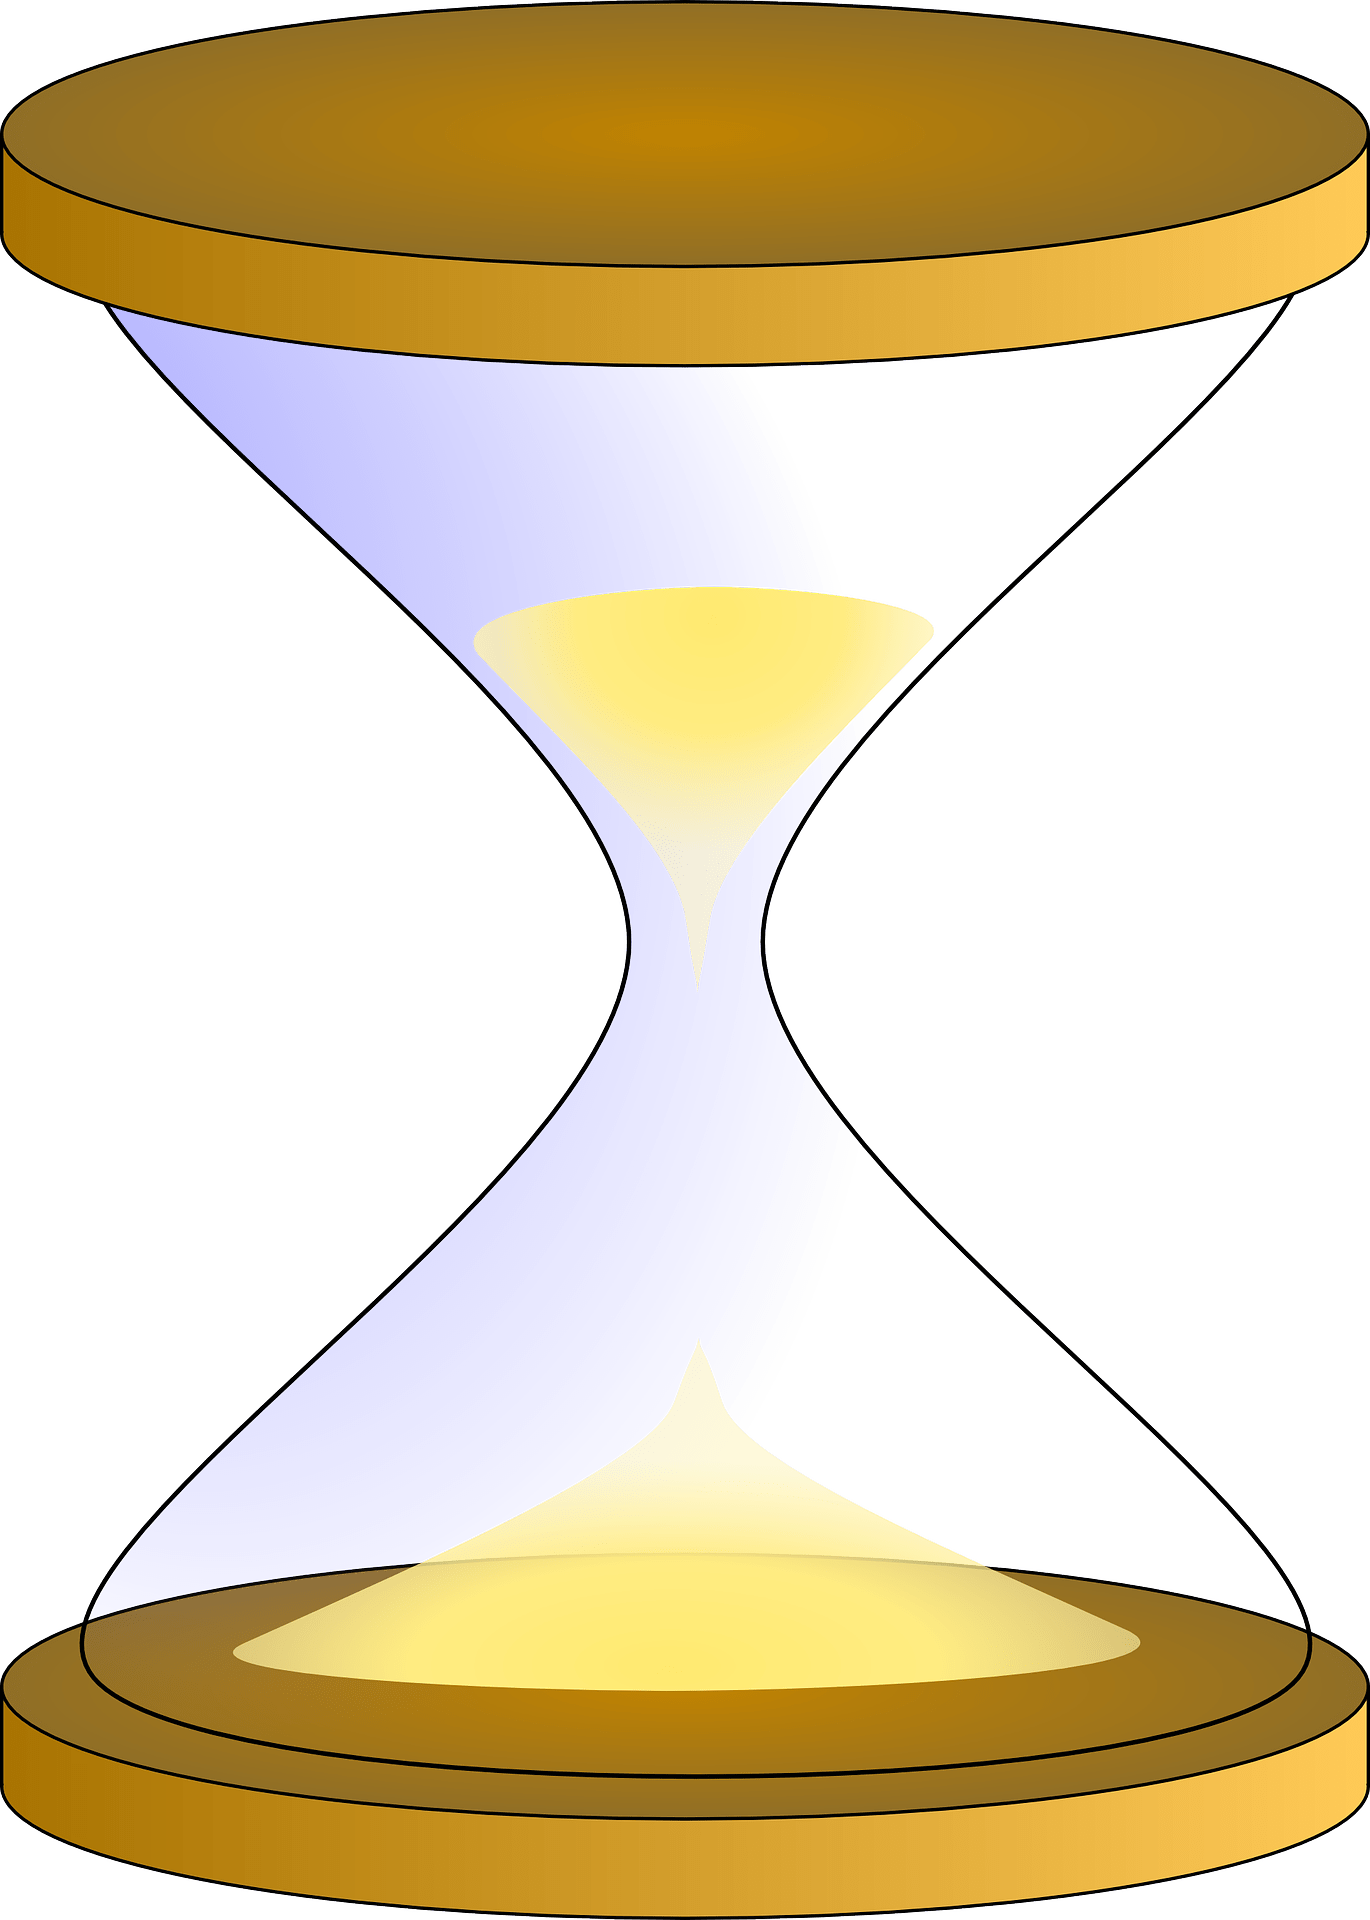 hight resolution of yellow hourglass clipart